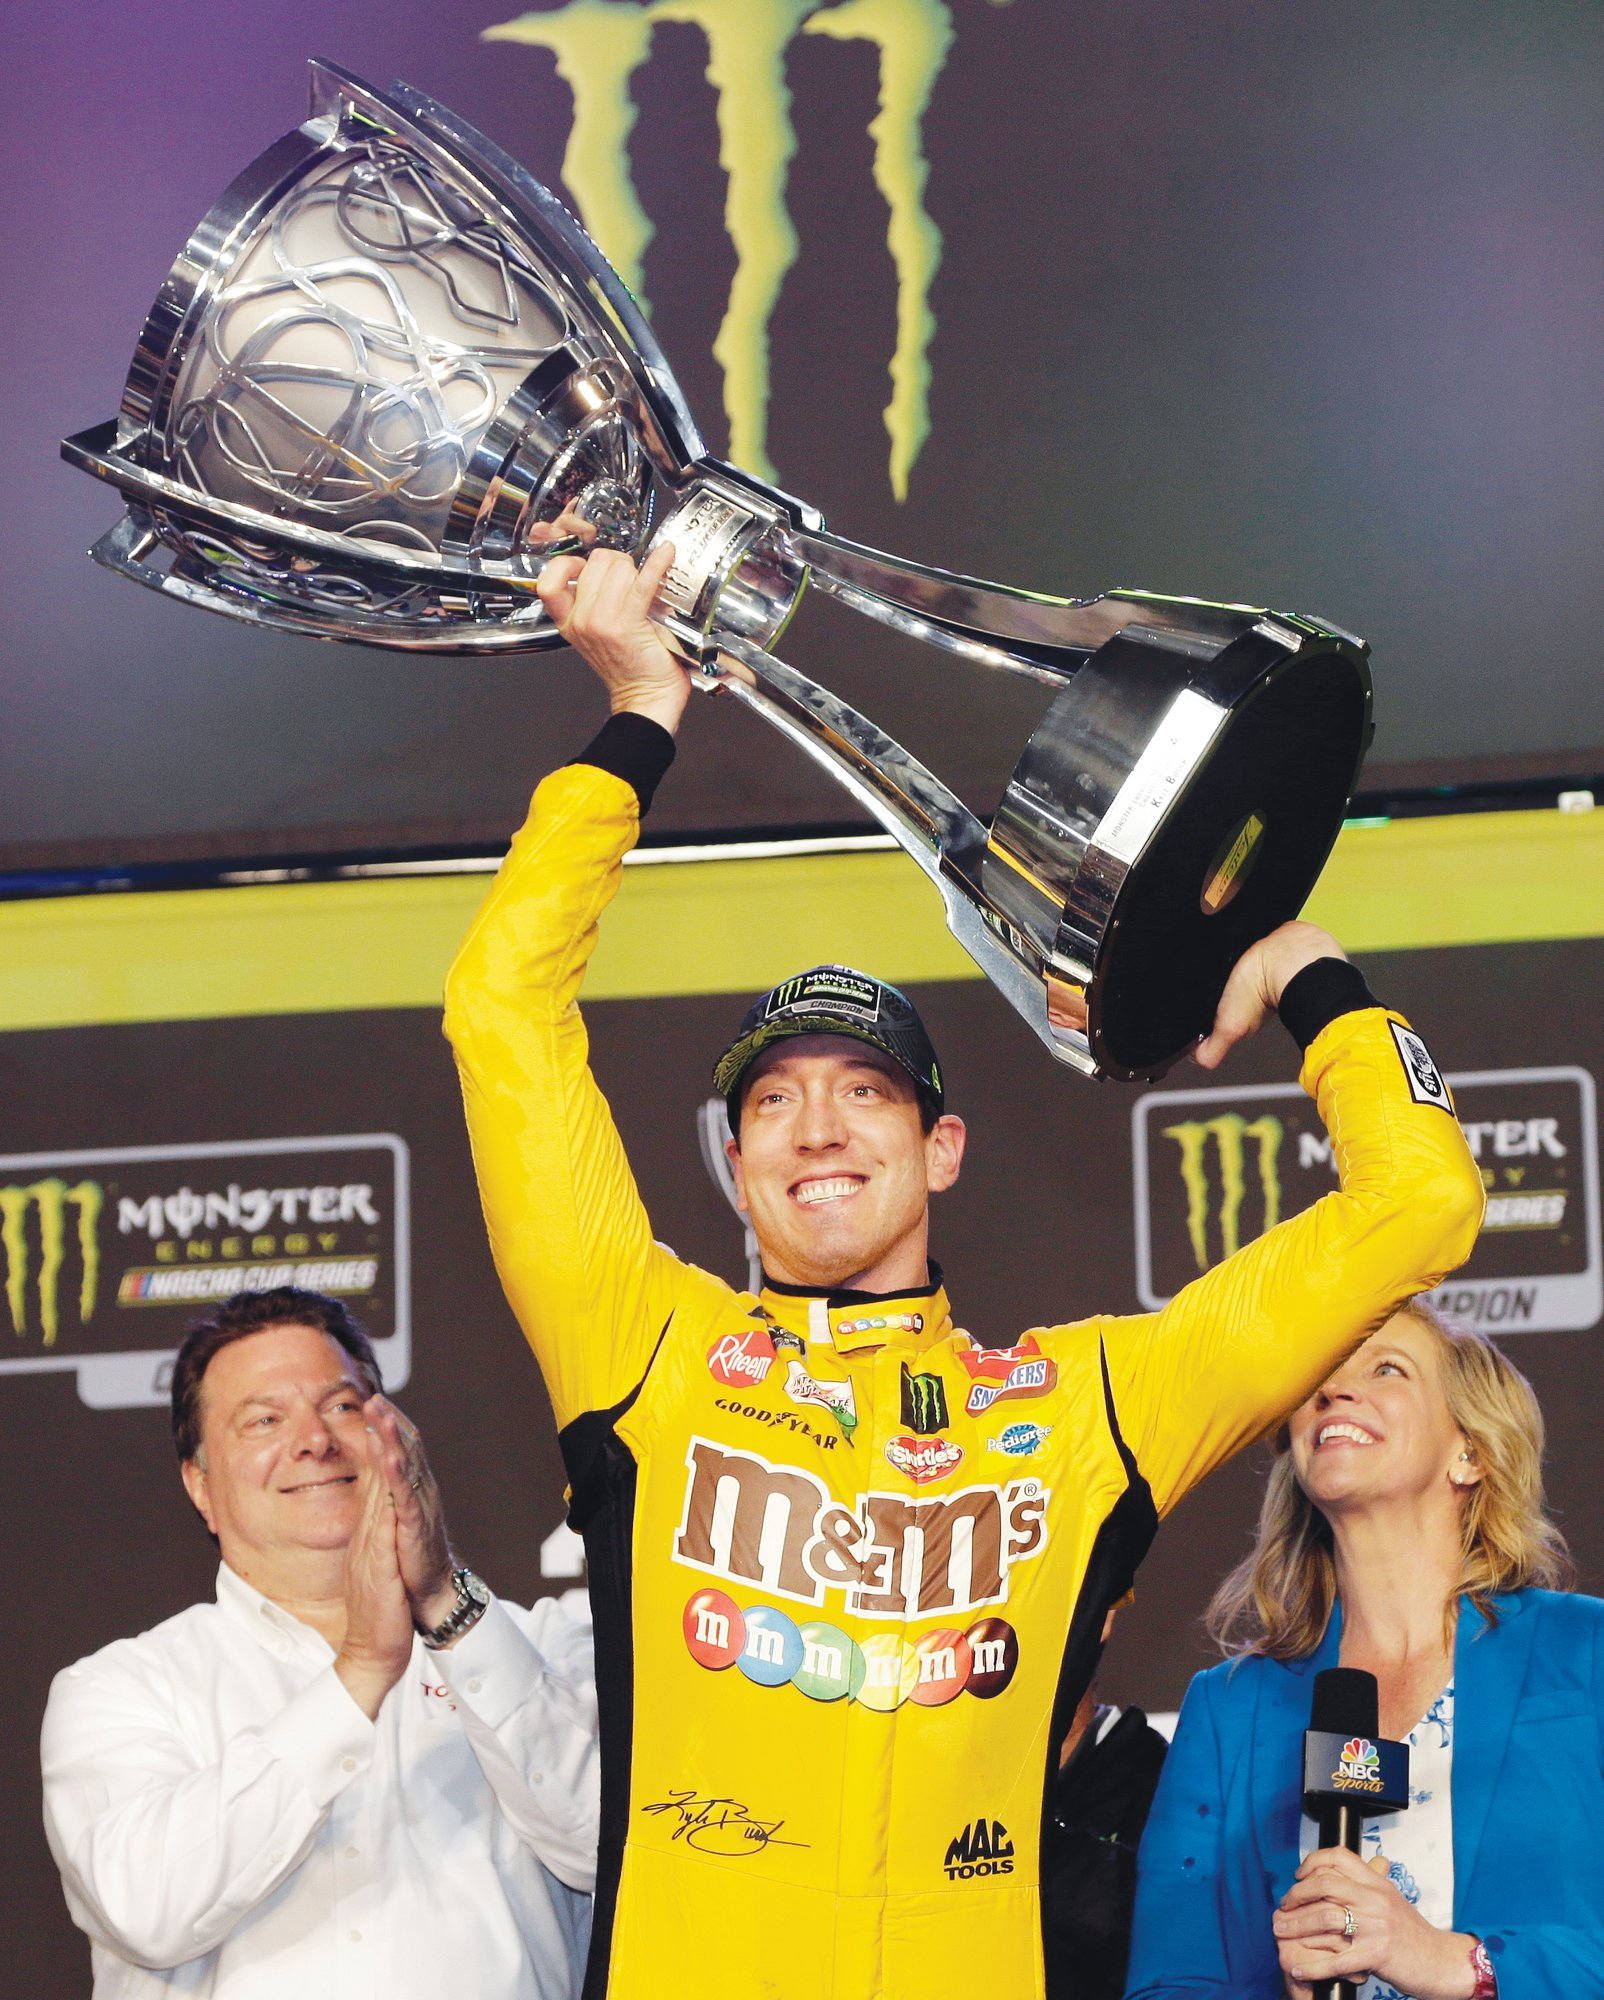 Kyle Busch holds up his trophy in Victory Lane after winning a NASCAR Cup Series auto racing season championship on Sunday, Nov. 17, 2019, at Homestead-Miami Speedway in Homestead, Fla.